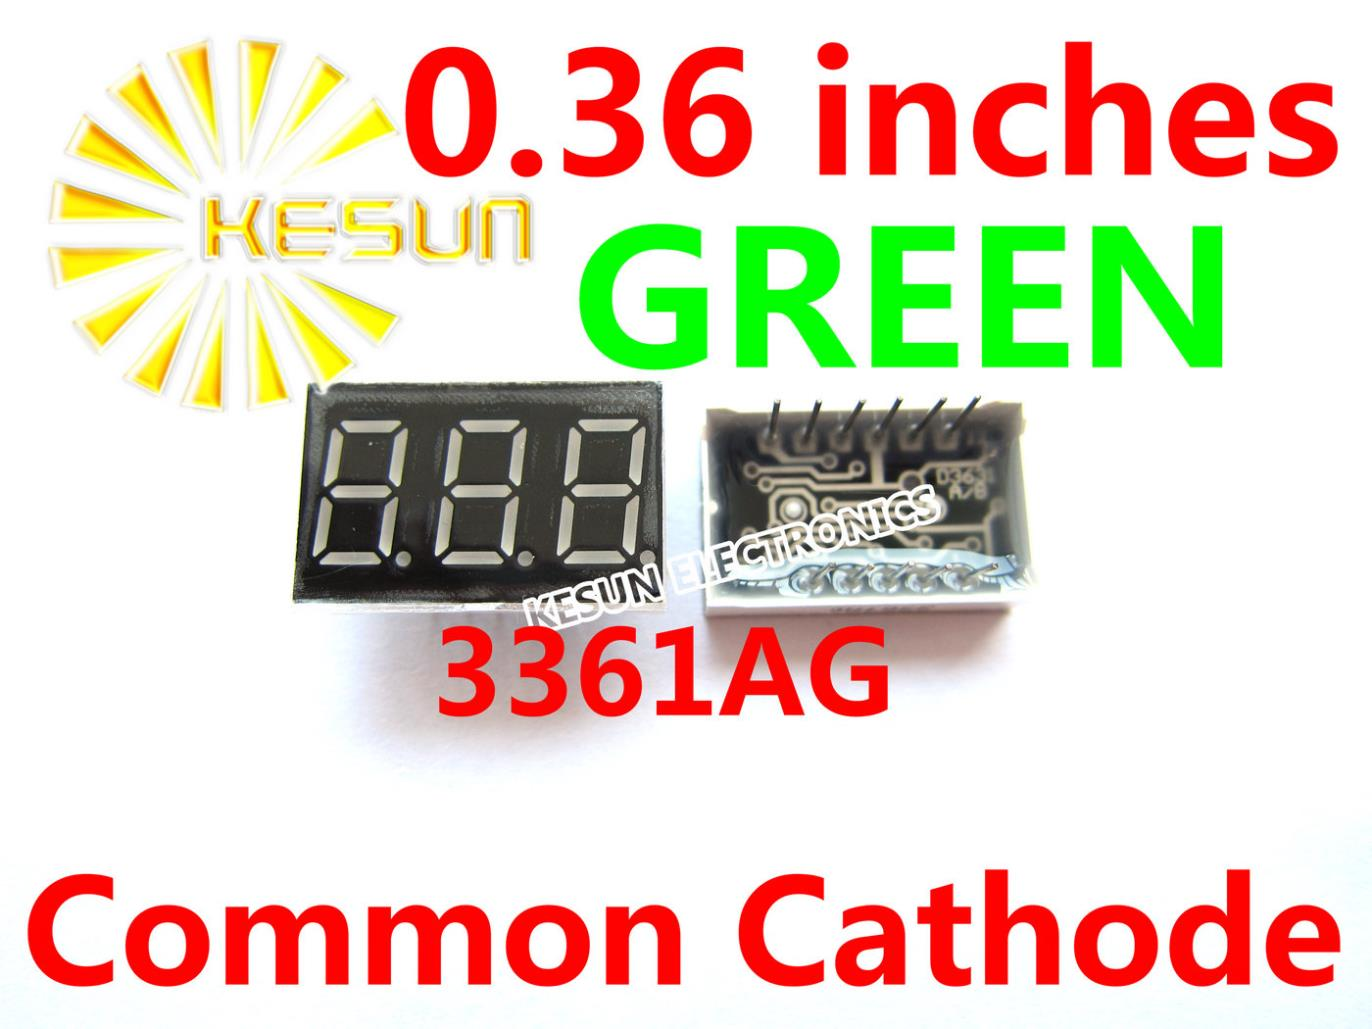 5PCS X 0.36 Inches Green Common Cathode/Anode 3 Digital Tube 3361BG 3361AG LED Display Module